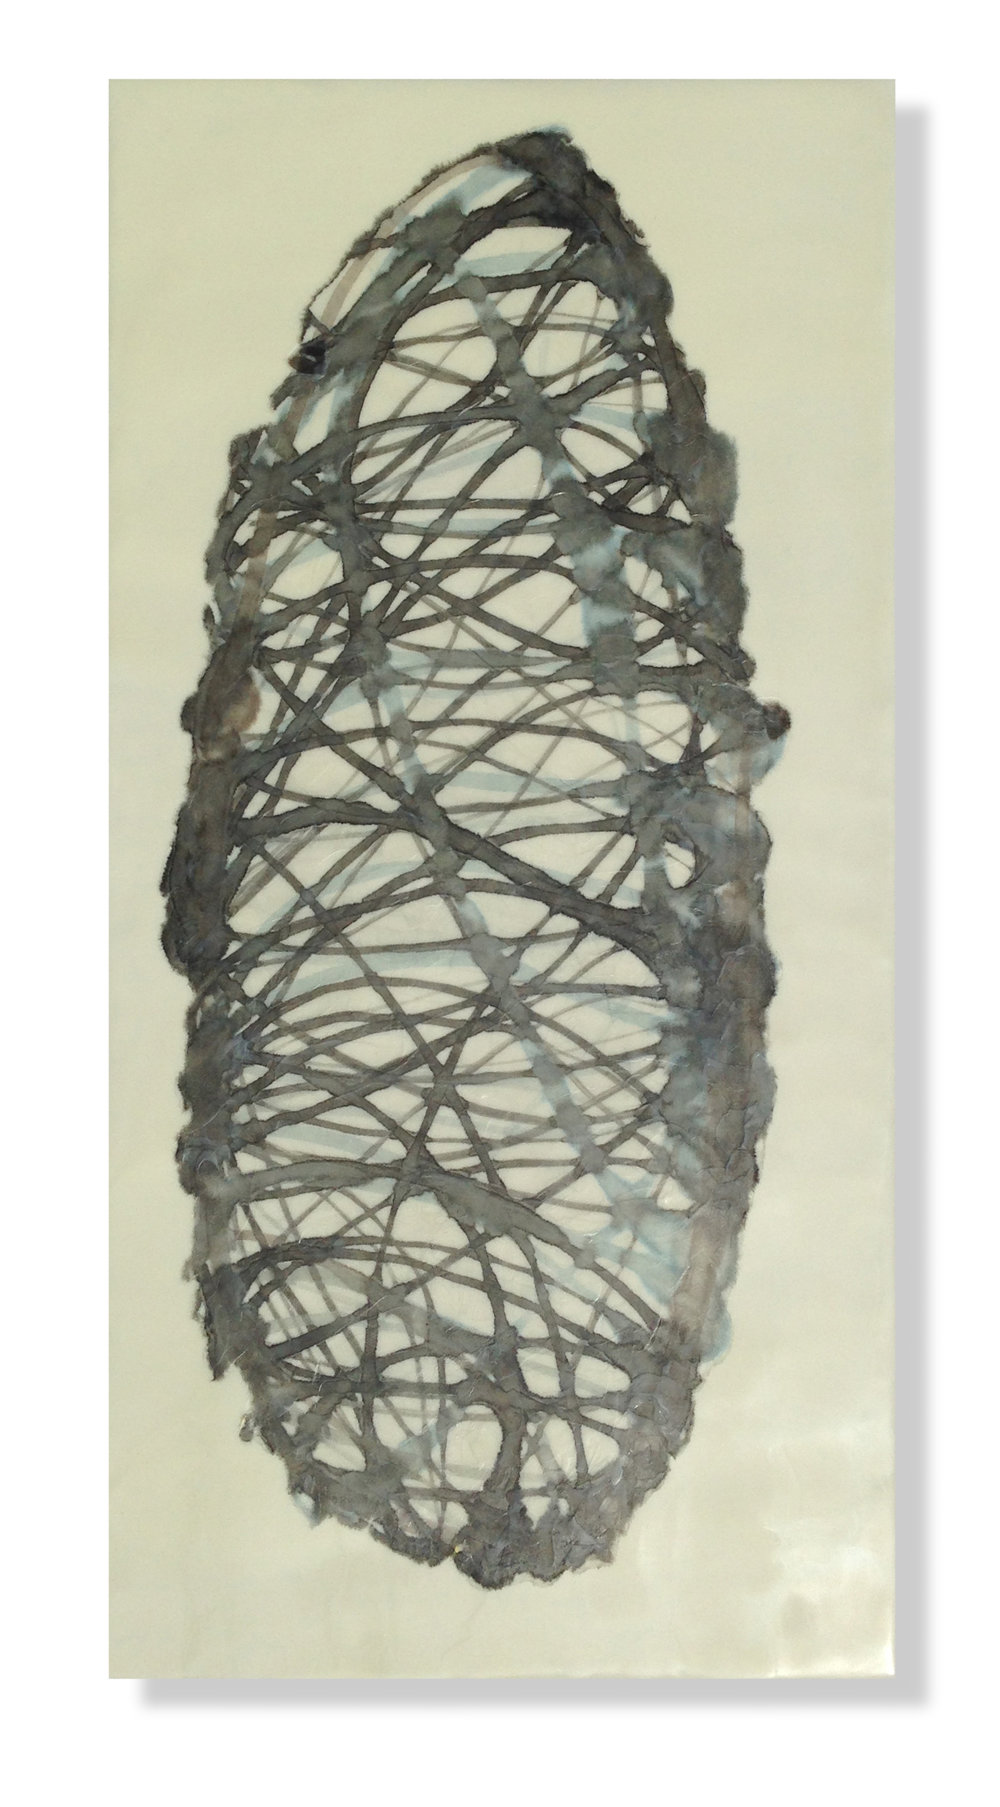 "Cocoon 3, 2014 Encaustic, Mulberry Paper, Watercolor 12"" x 24"" x 1"" SOLD"